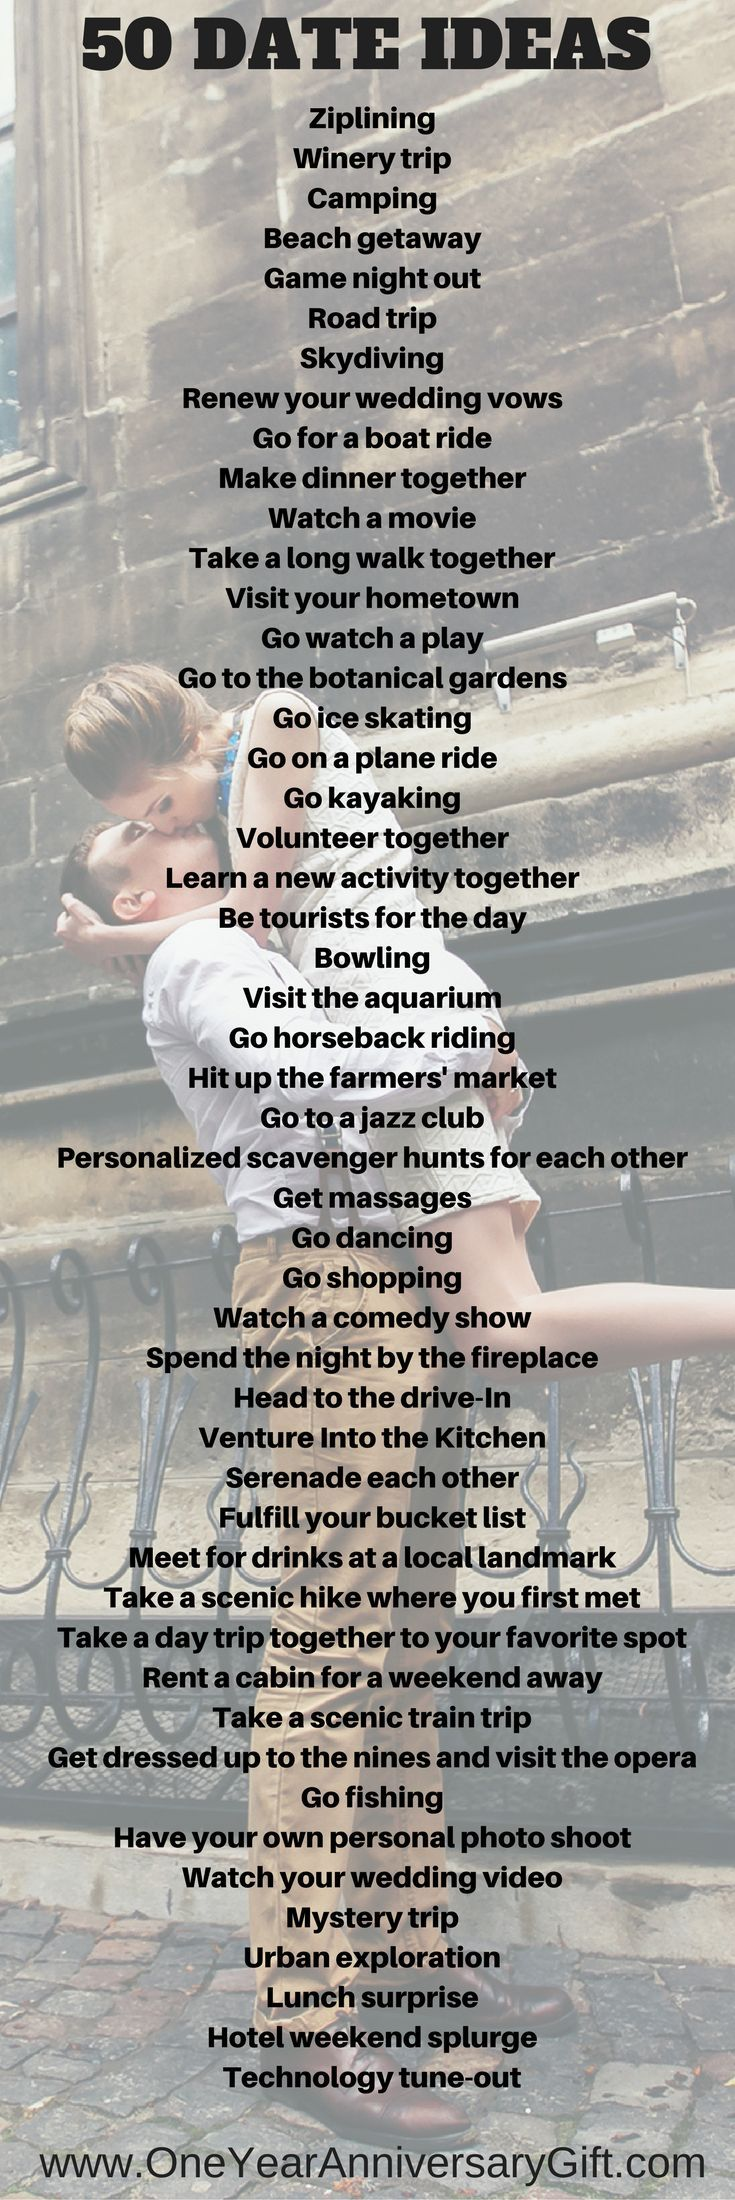 Things to do on your one year dating anniversary